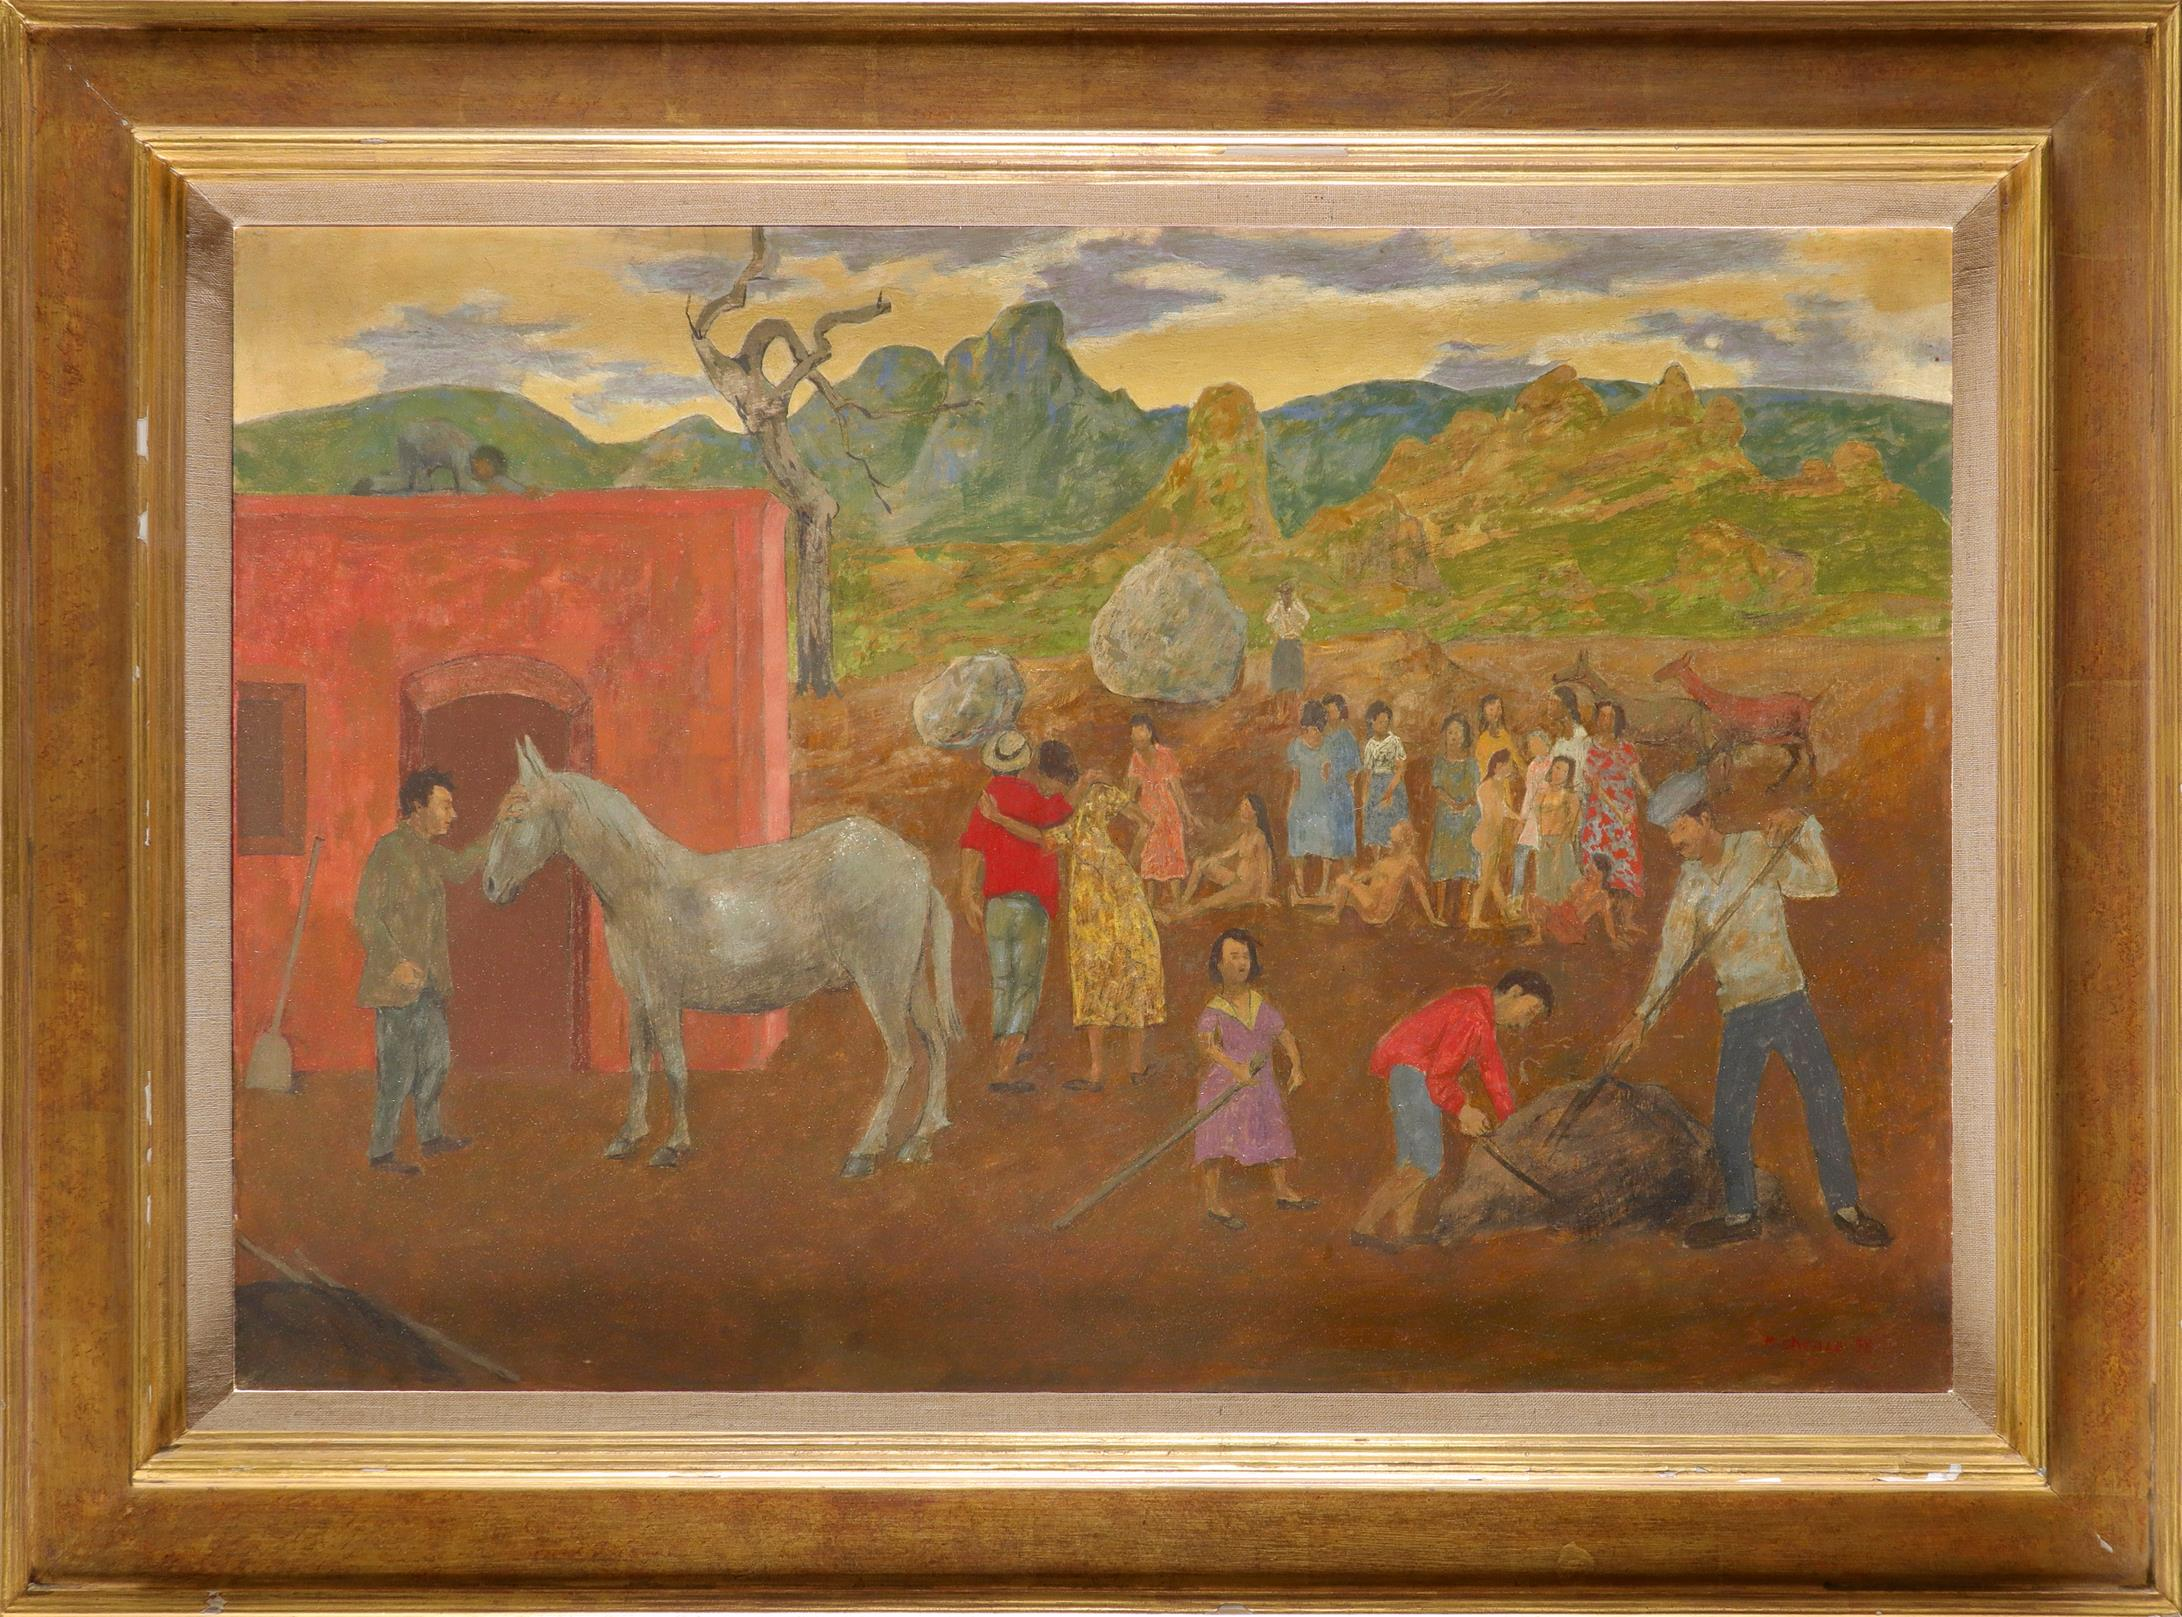 ‡Grégoire Michonze (French 1902-1982) Landscape with villagers and horses Signed and dated - Image 2 of 3